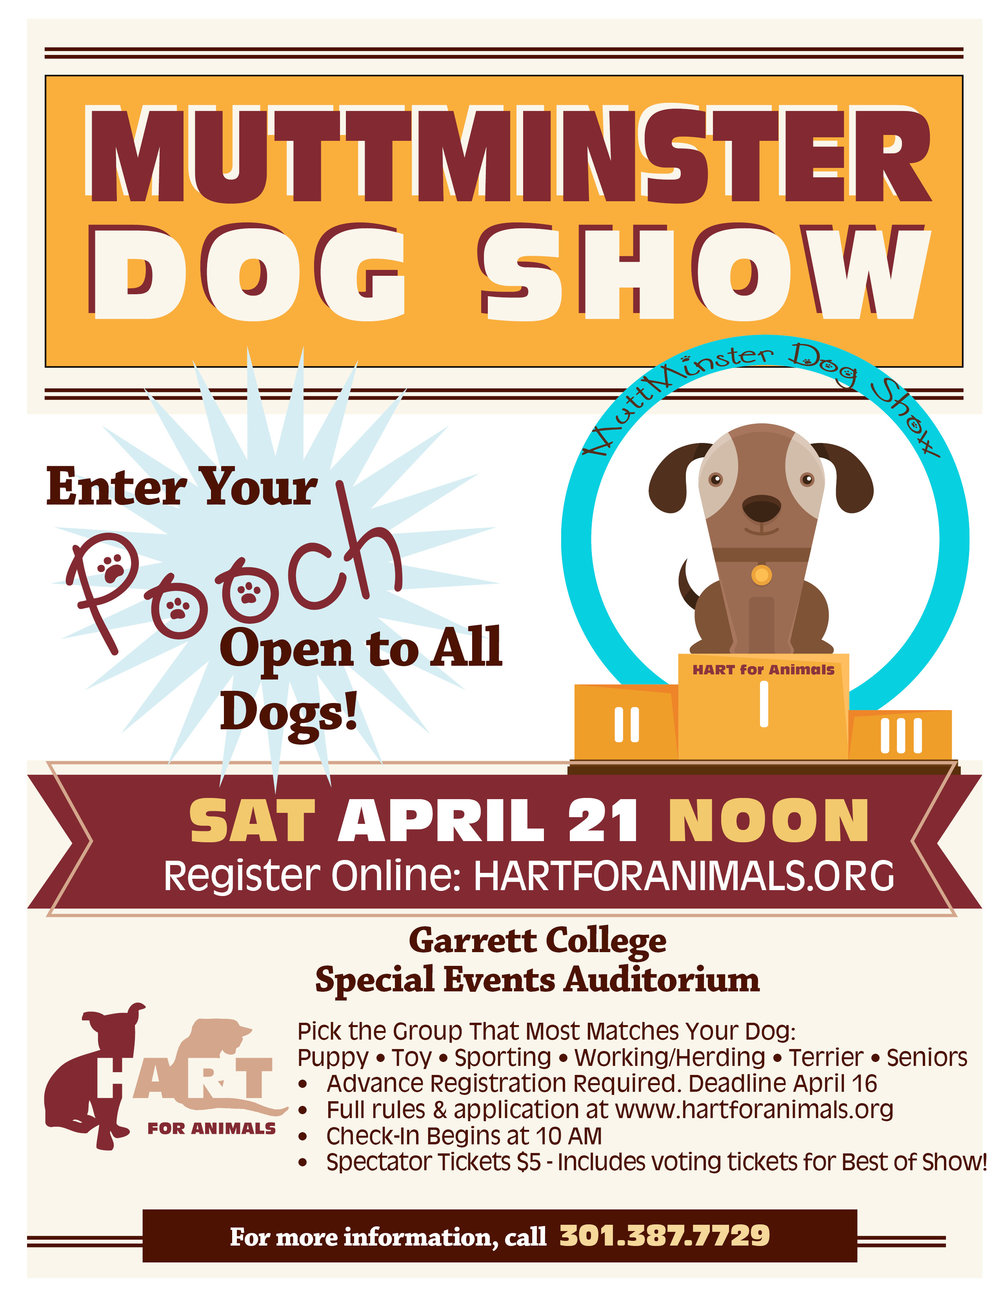 MuttMinster-flyer18.jpg